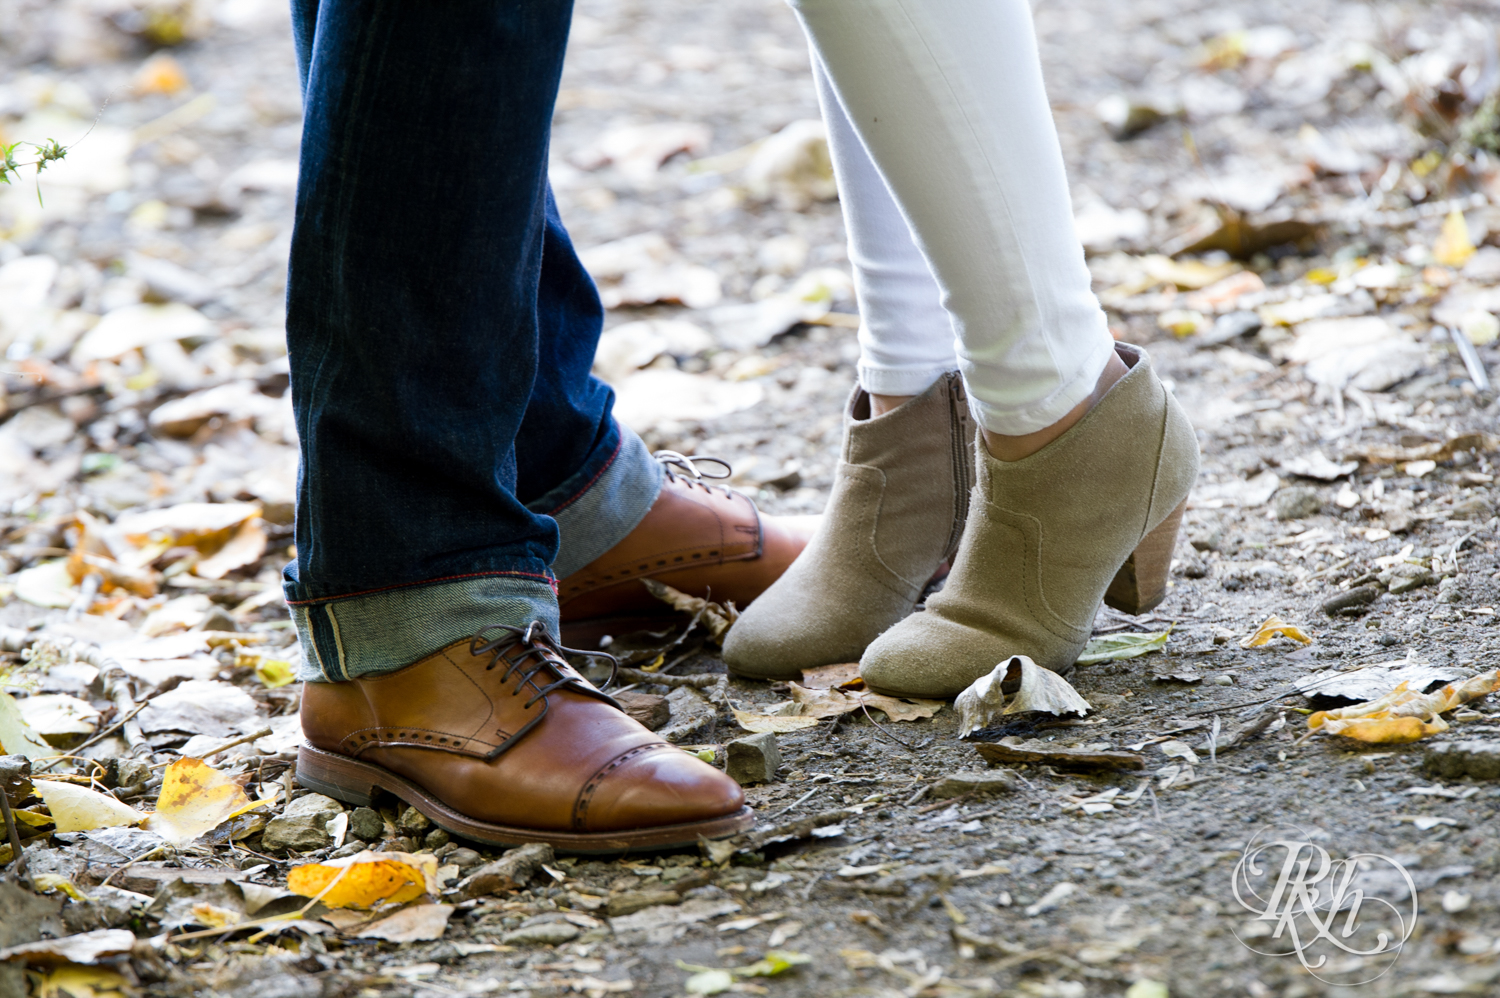 Courtney and Nick - Minnesota Engagement Photography - Stone Arch Bride - RKH Images (11 of 14).jpg